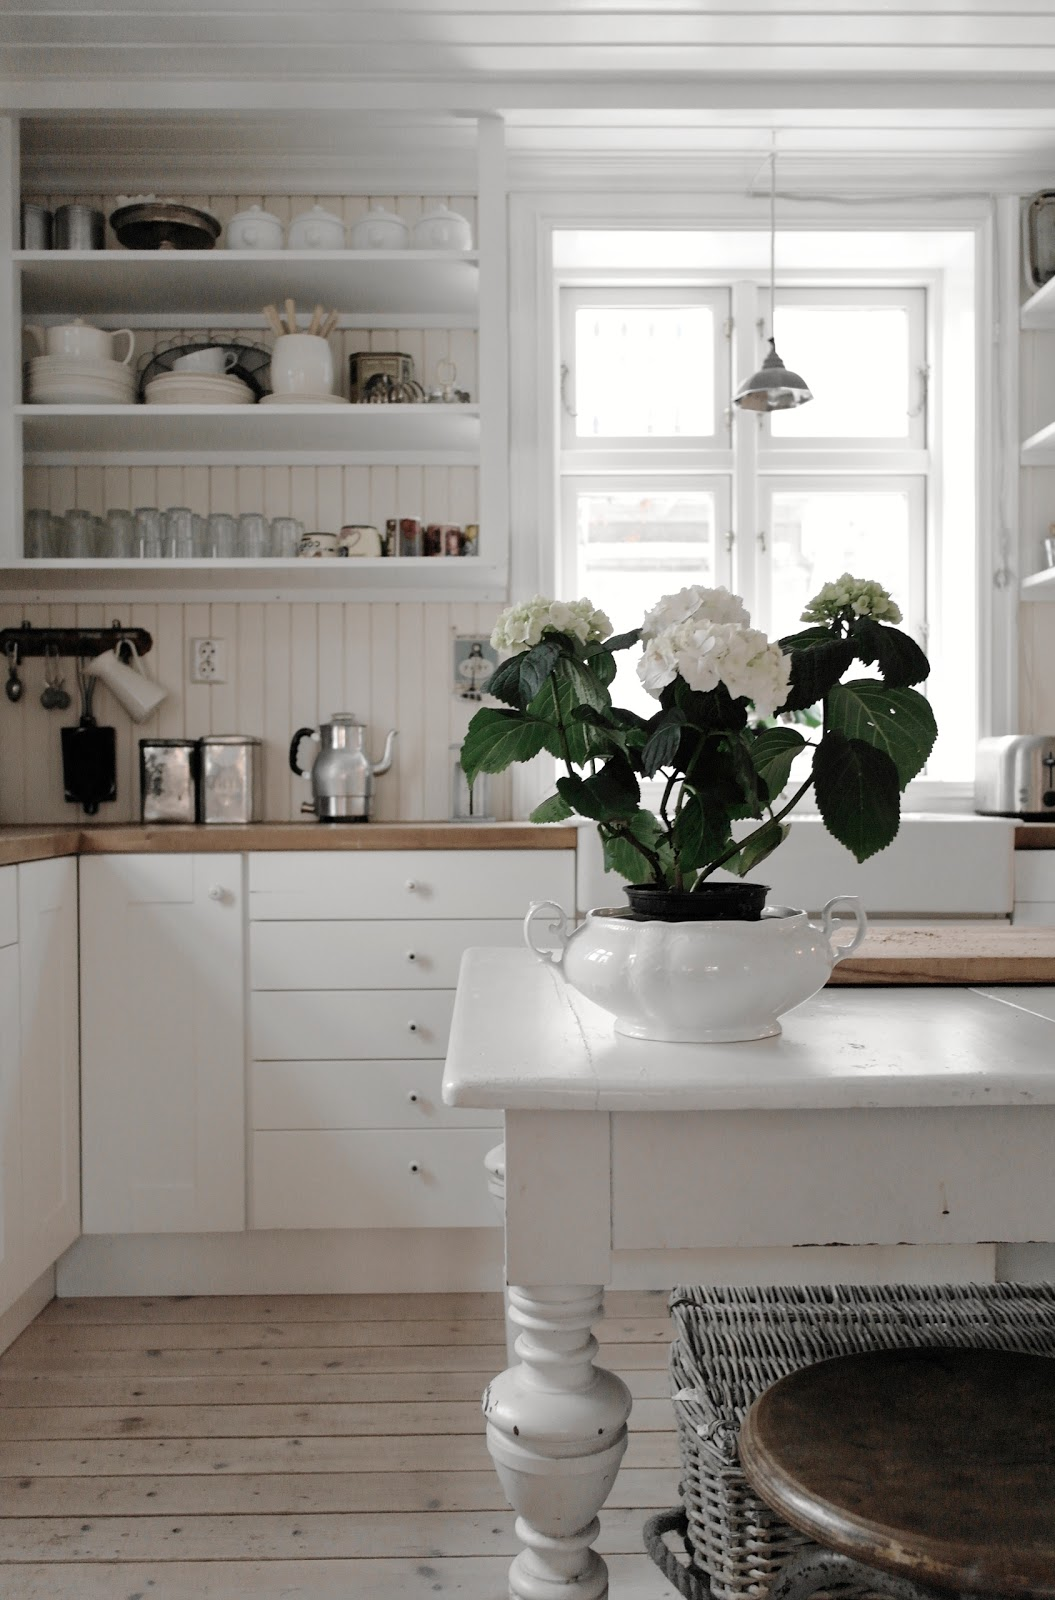 1000+ images about Kitchens: Open Shelving on Pinterest ...